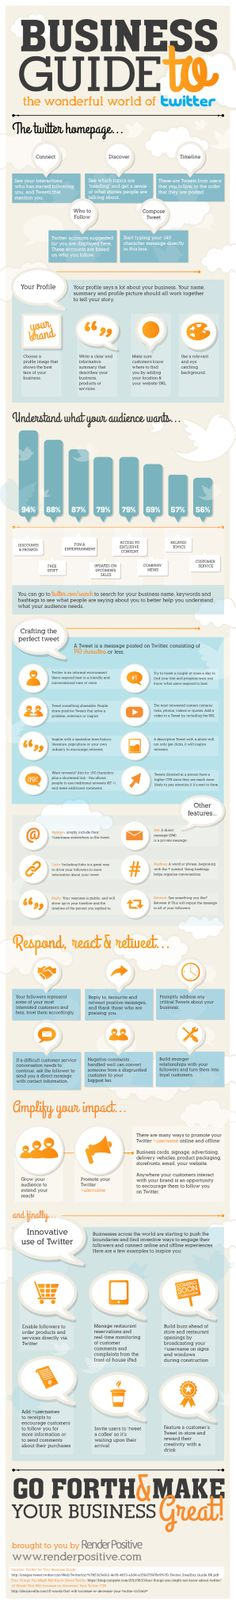 Complete Business Guide To Twitter - Infographic